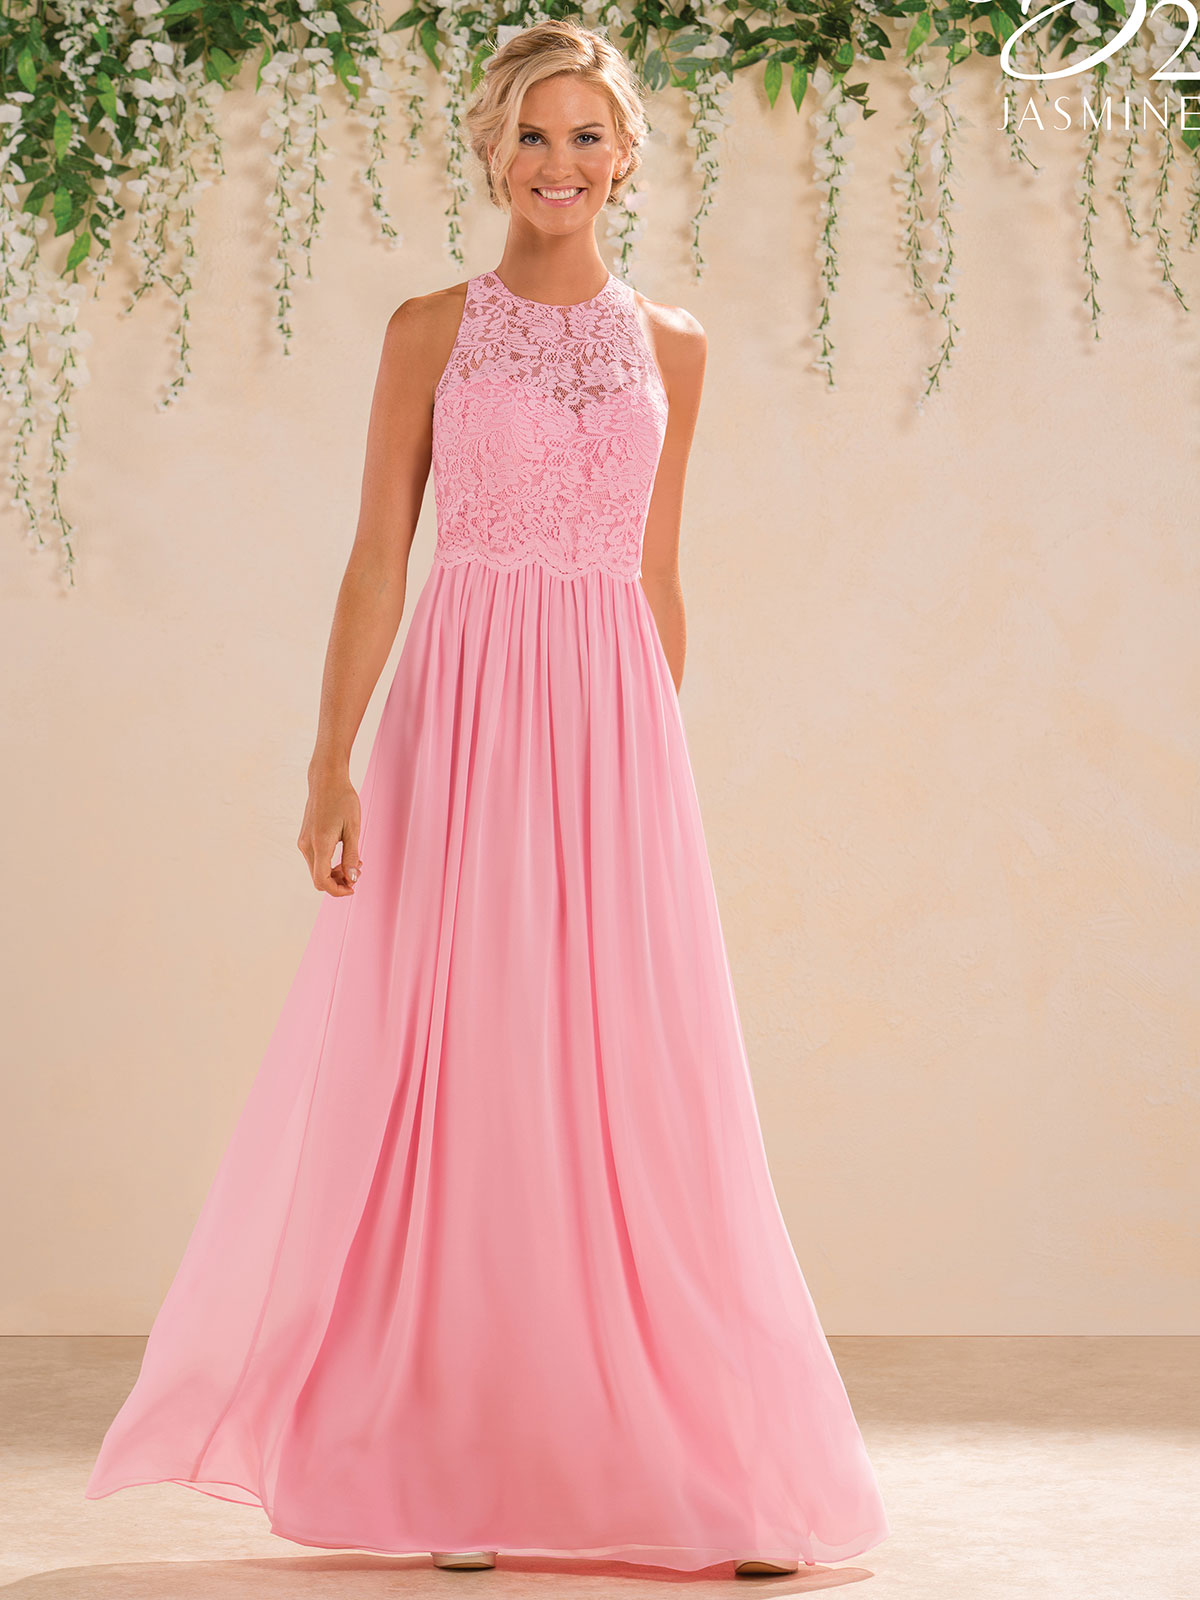 Jasmine b183017 high neck chiffon a line bridesmaid dress jasmine b183017 high neck lace bridesmaid dress ombrellifo Images